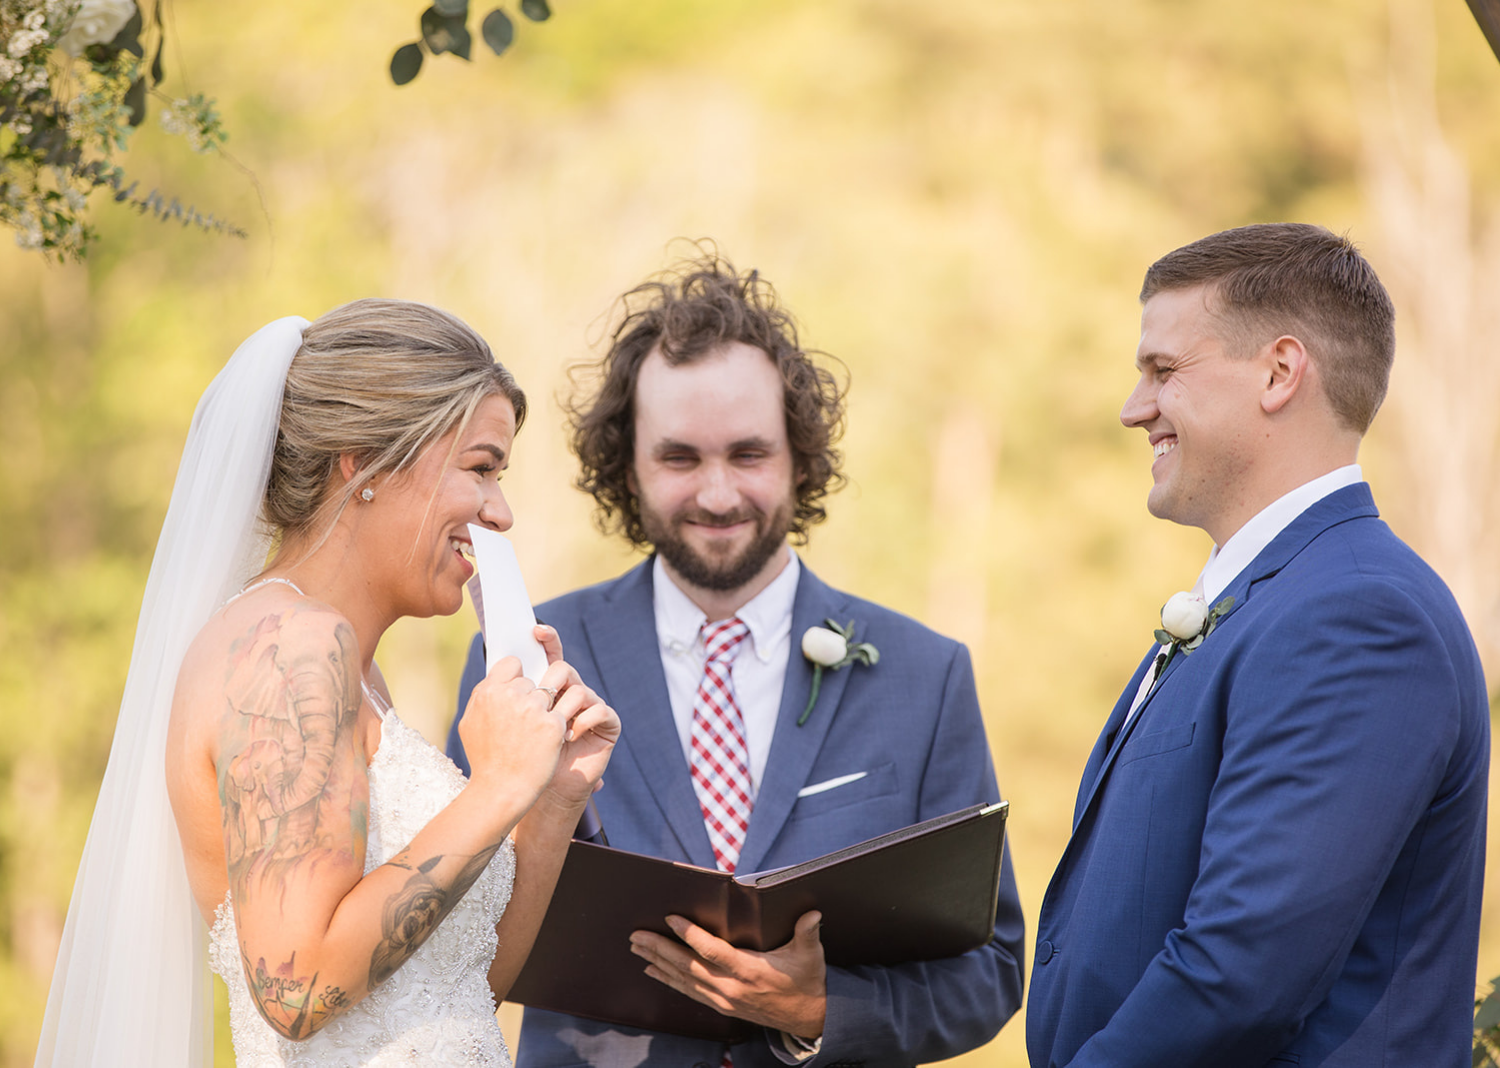 bride smiles as she reads wedding vows to the groom